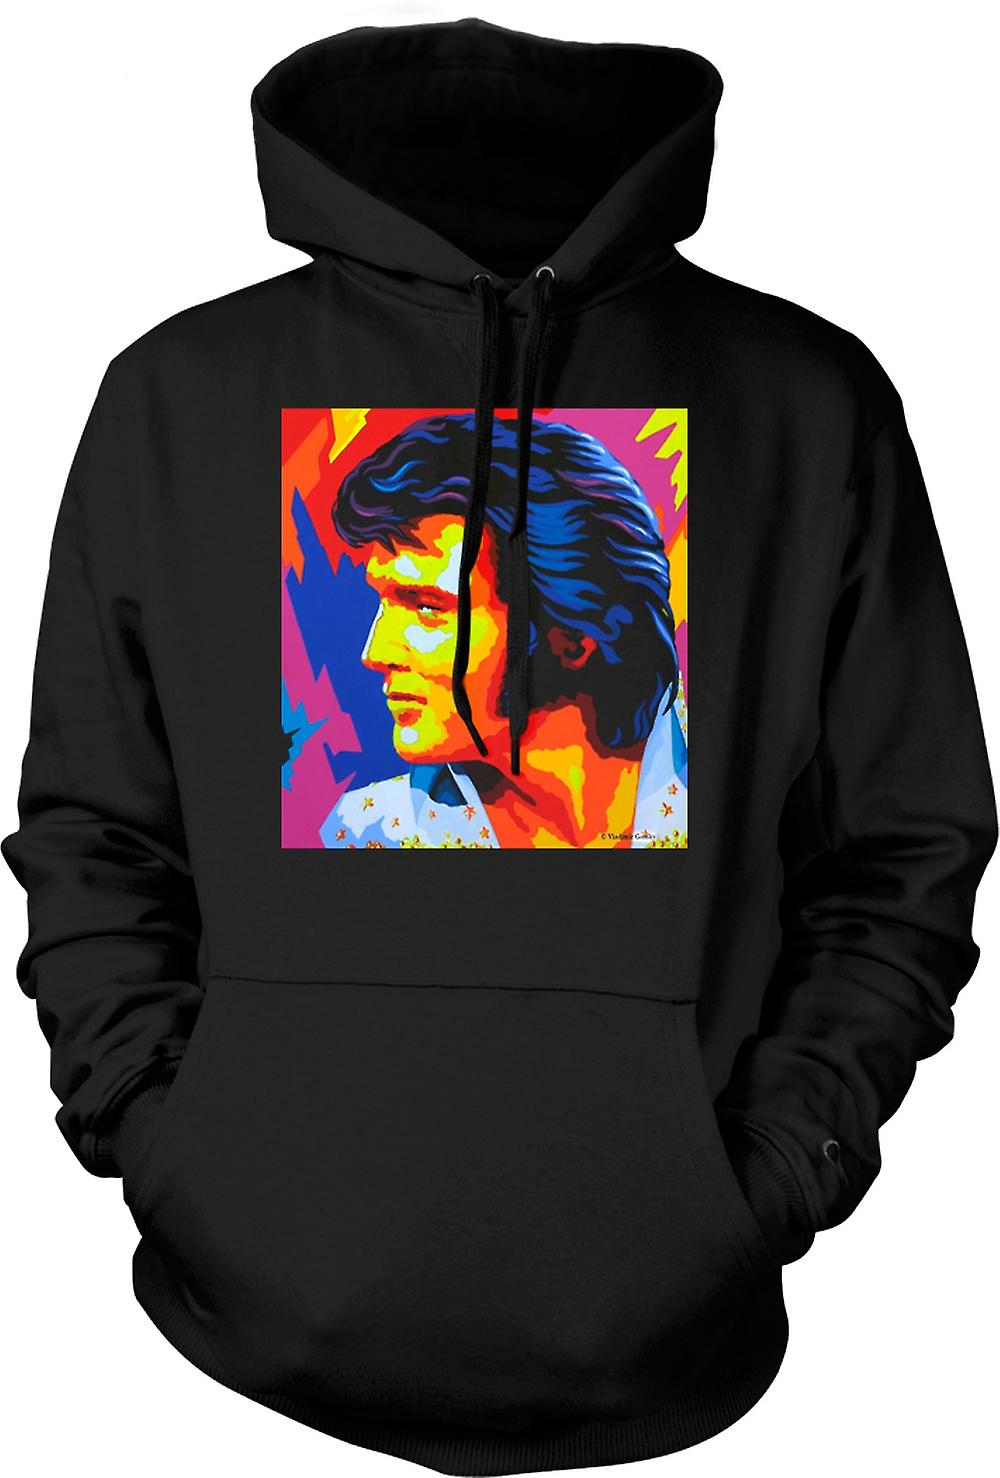 Mens Hoodie - Elvis Presley Colour - Pop Art